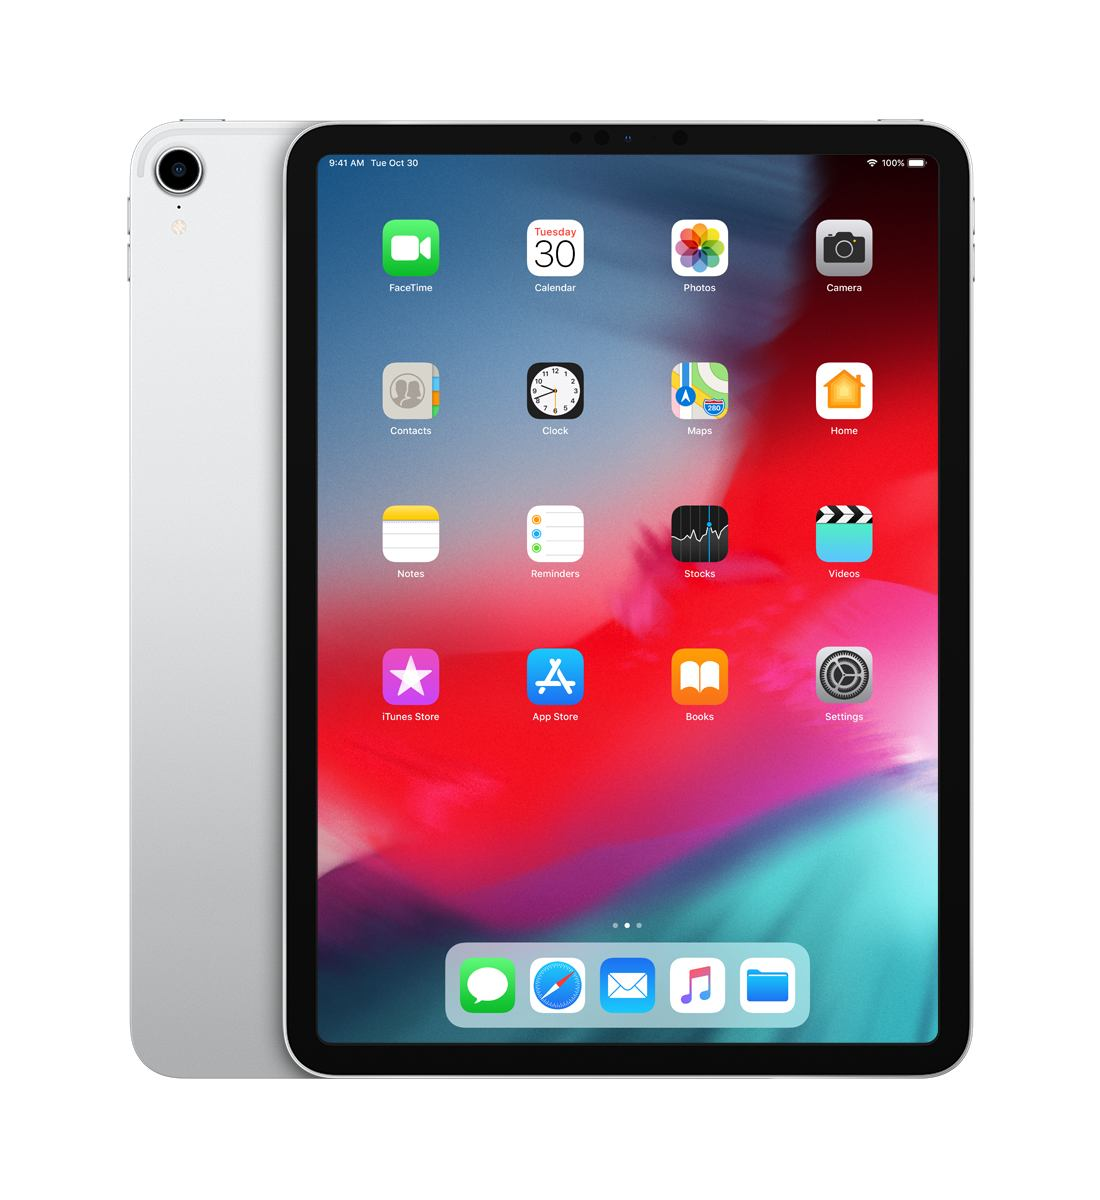 2022274-Apple-iPad-Pro-tablet-A12X-512-GB-Argento-Apple-11-inch-iPad-Pro-Wi-Fi